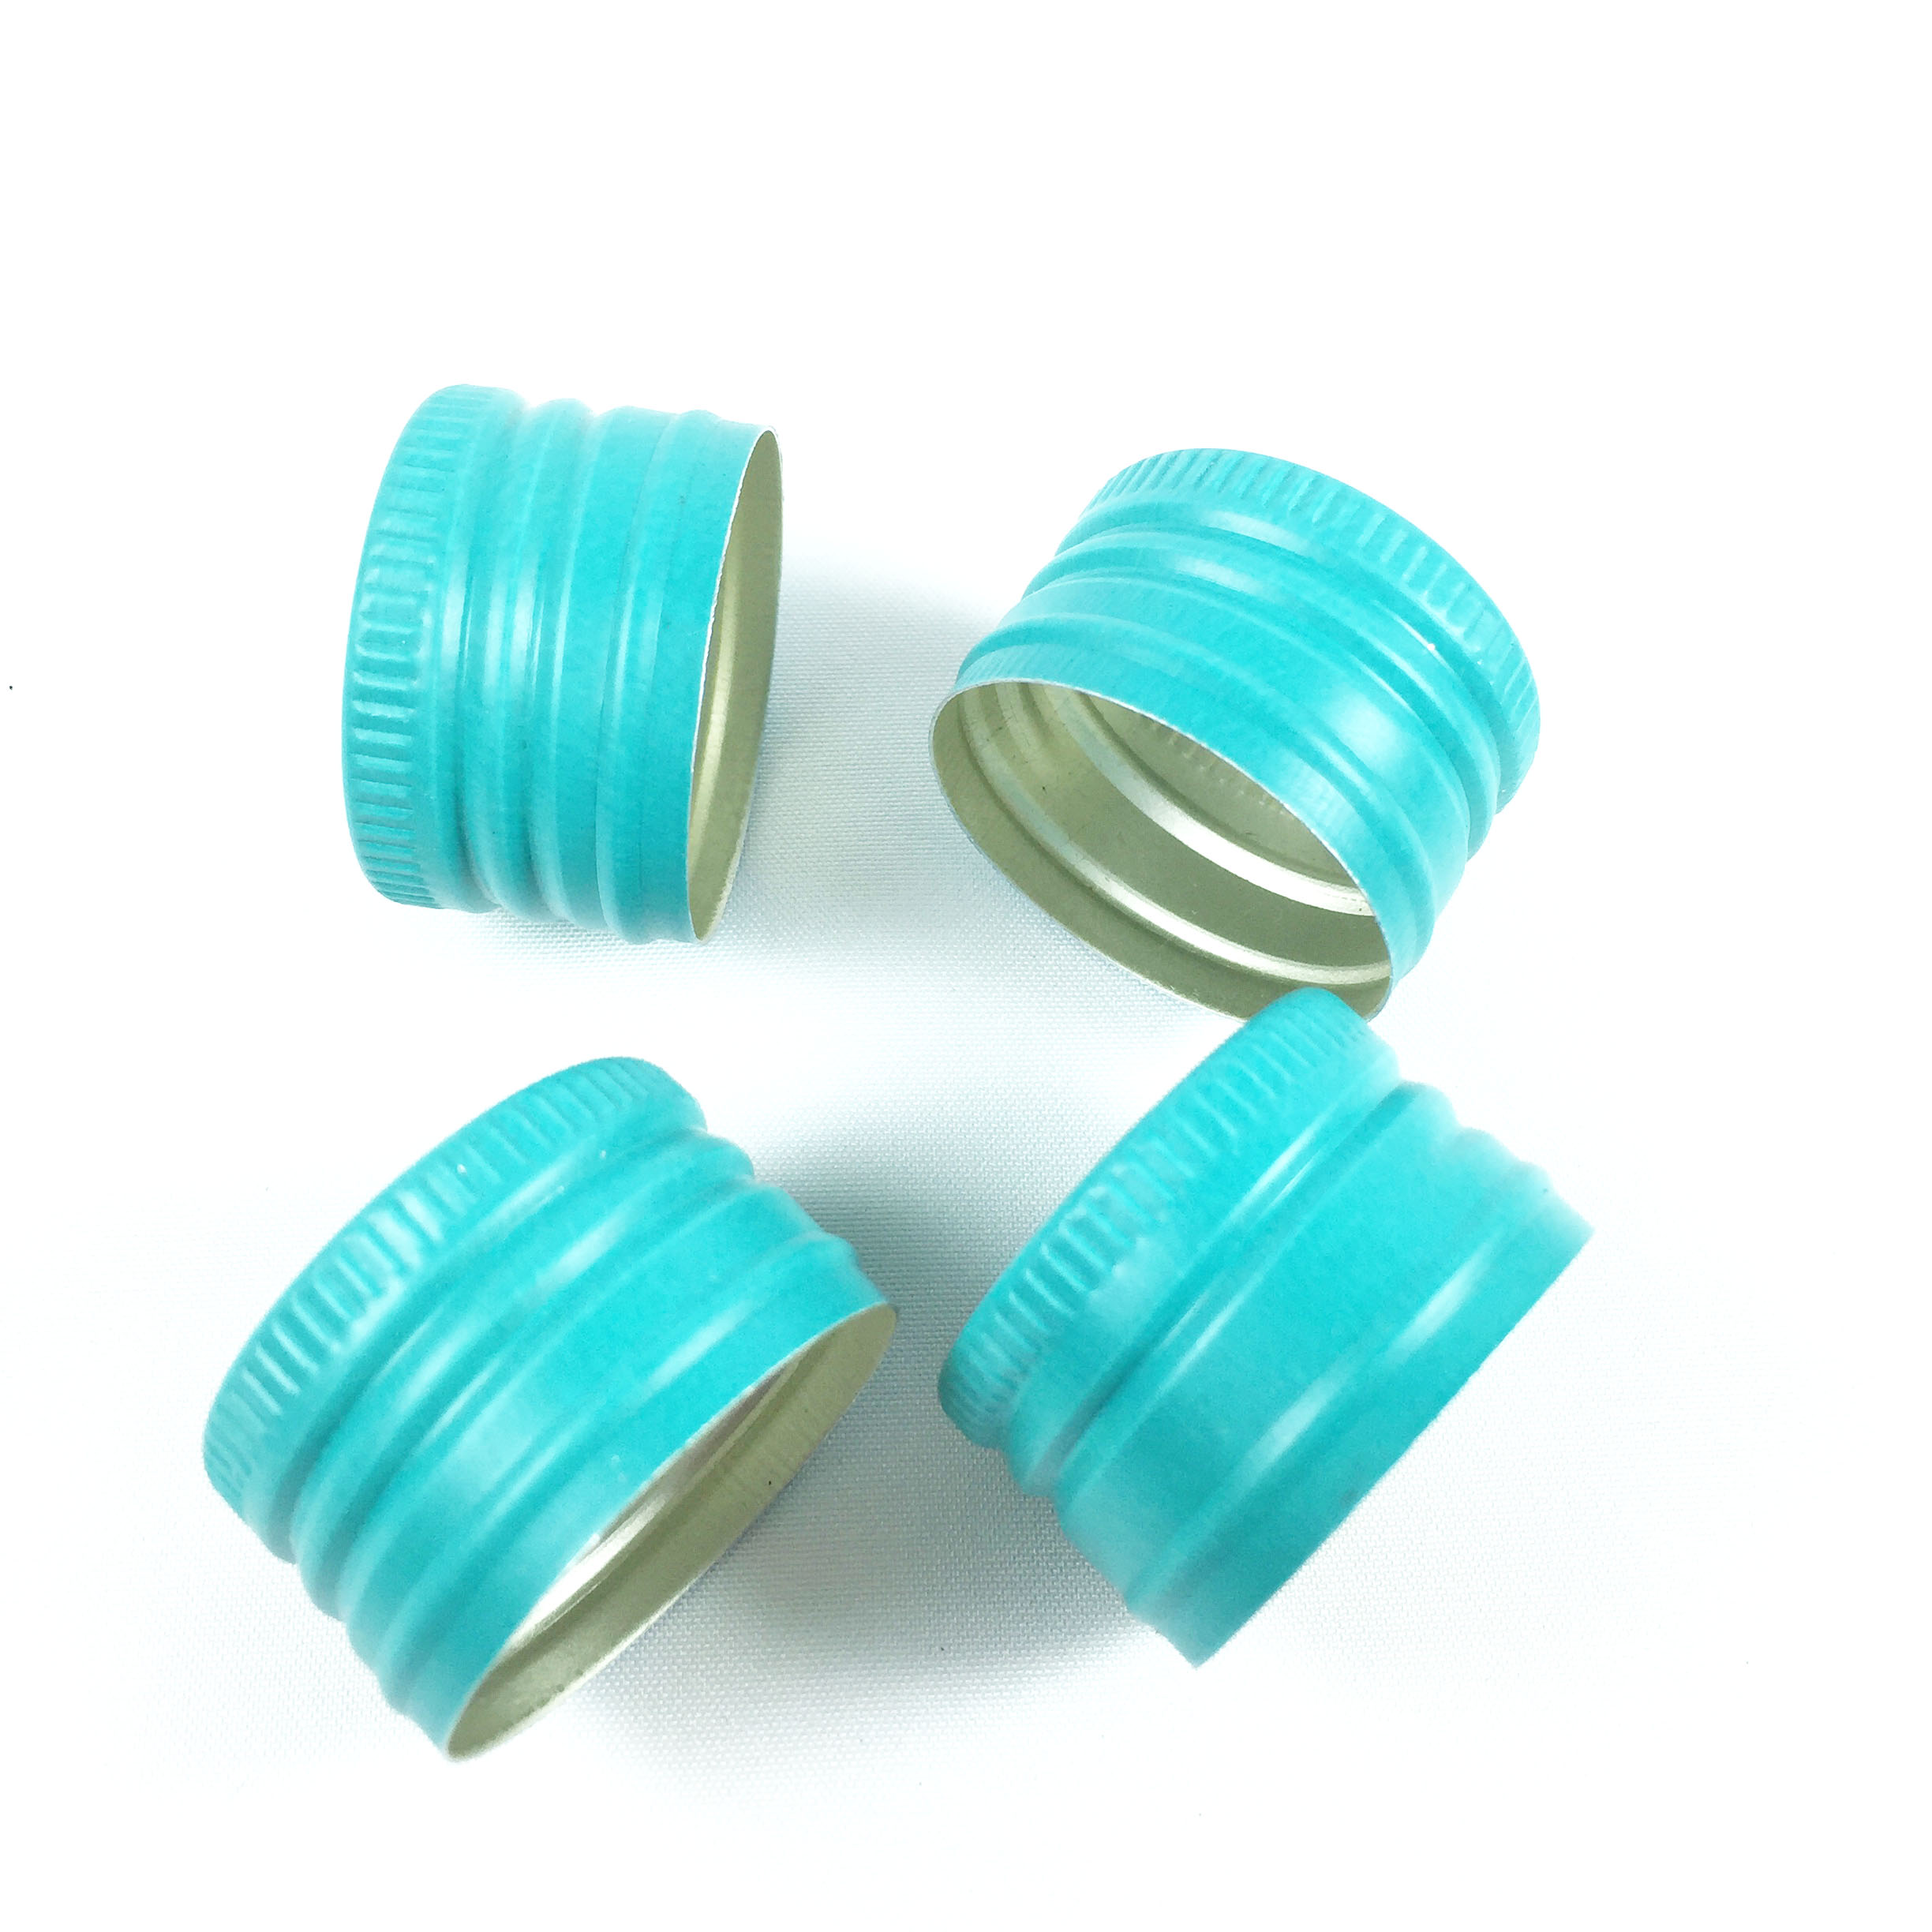 27.6*18mm Aluminium Screw Cap